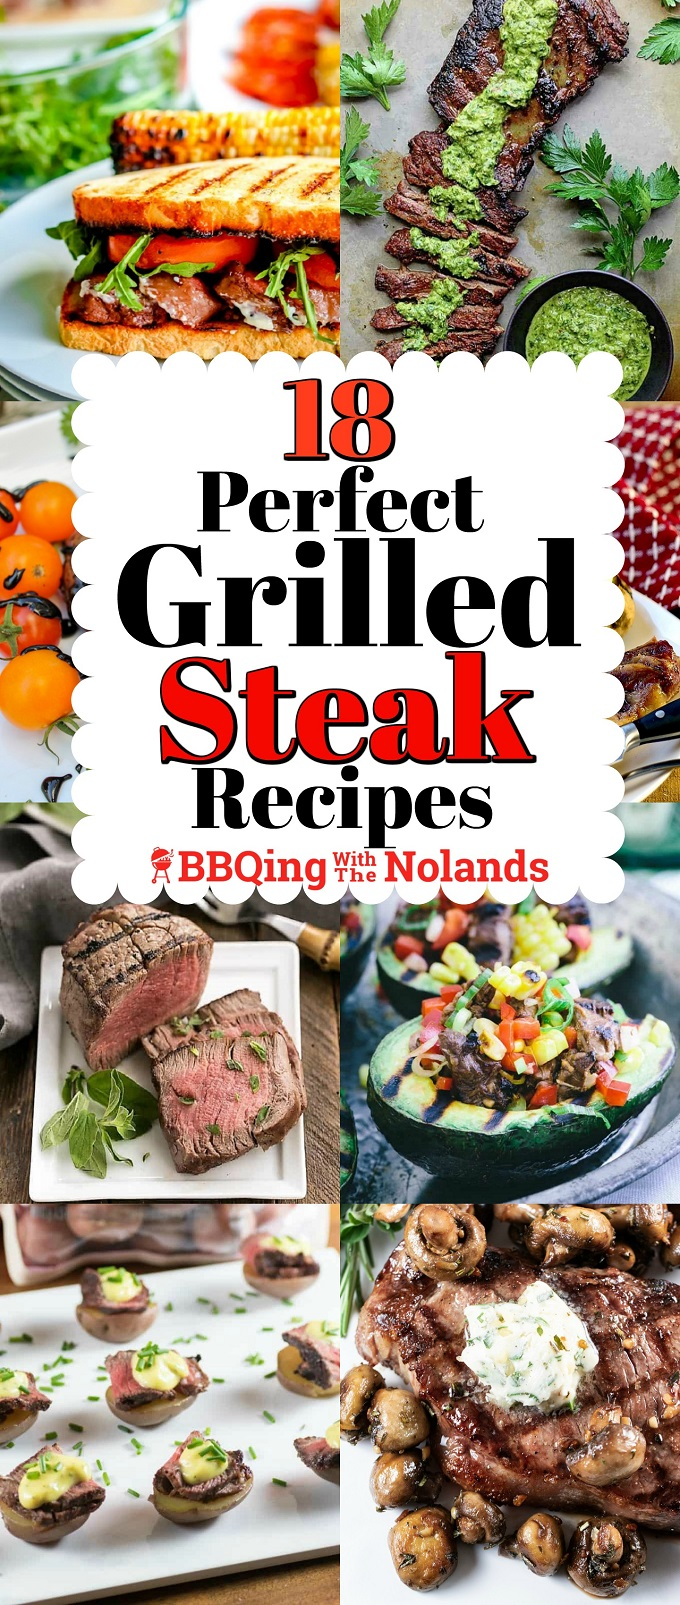 18 perfect grilled steak recipes, something for ever taste and budget! #Grilling #Steaks #grilledsteaks